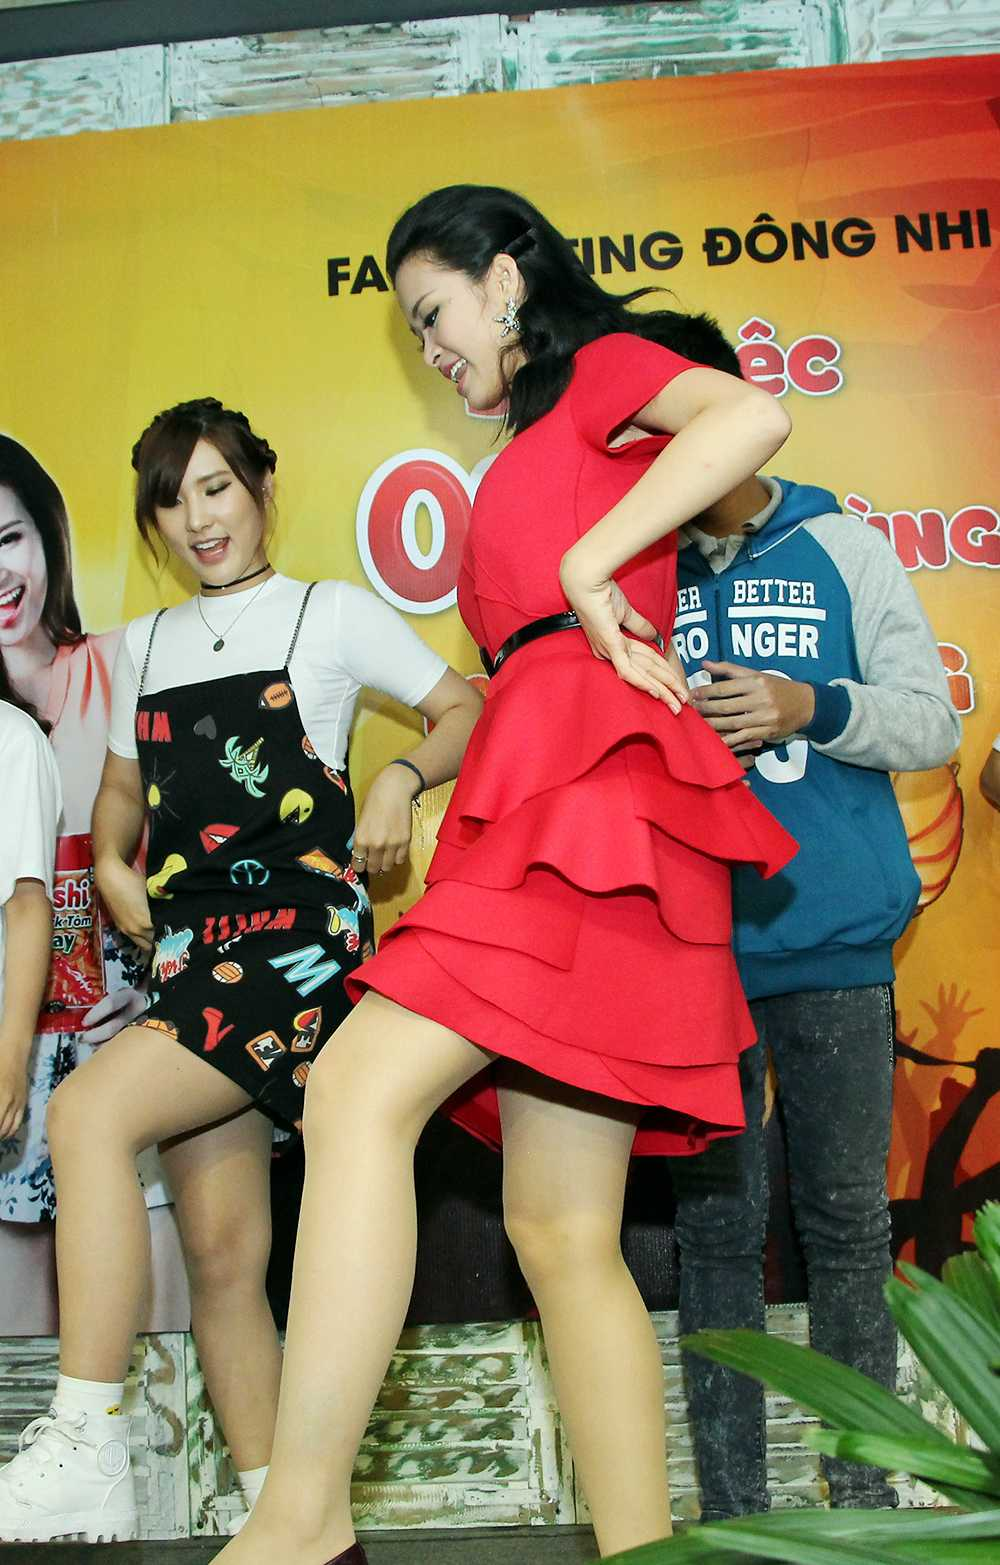 Dong Nhi tiet lo ve liveshow dau tien trong su nghiep hinh anh 5